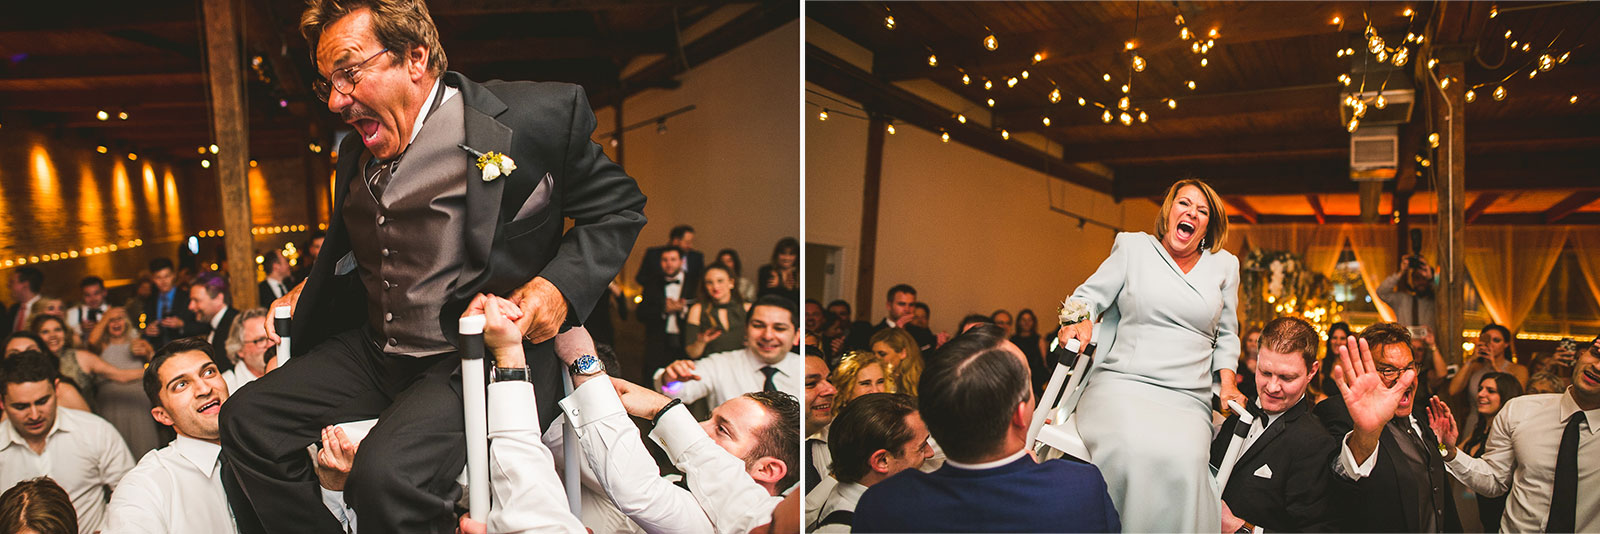 83 best hora photography - Chicago Wedding Photography at Gallery 1028 // Courtnie + David